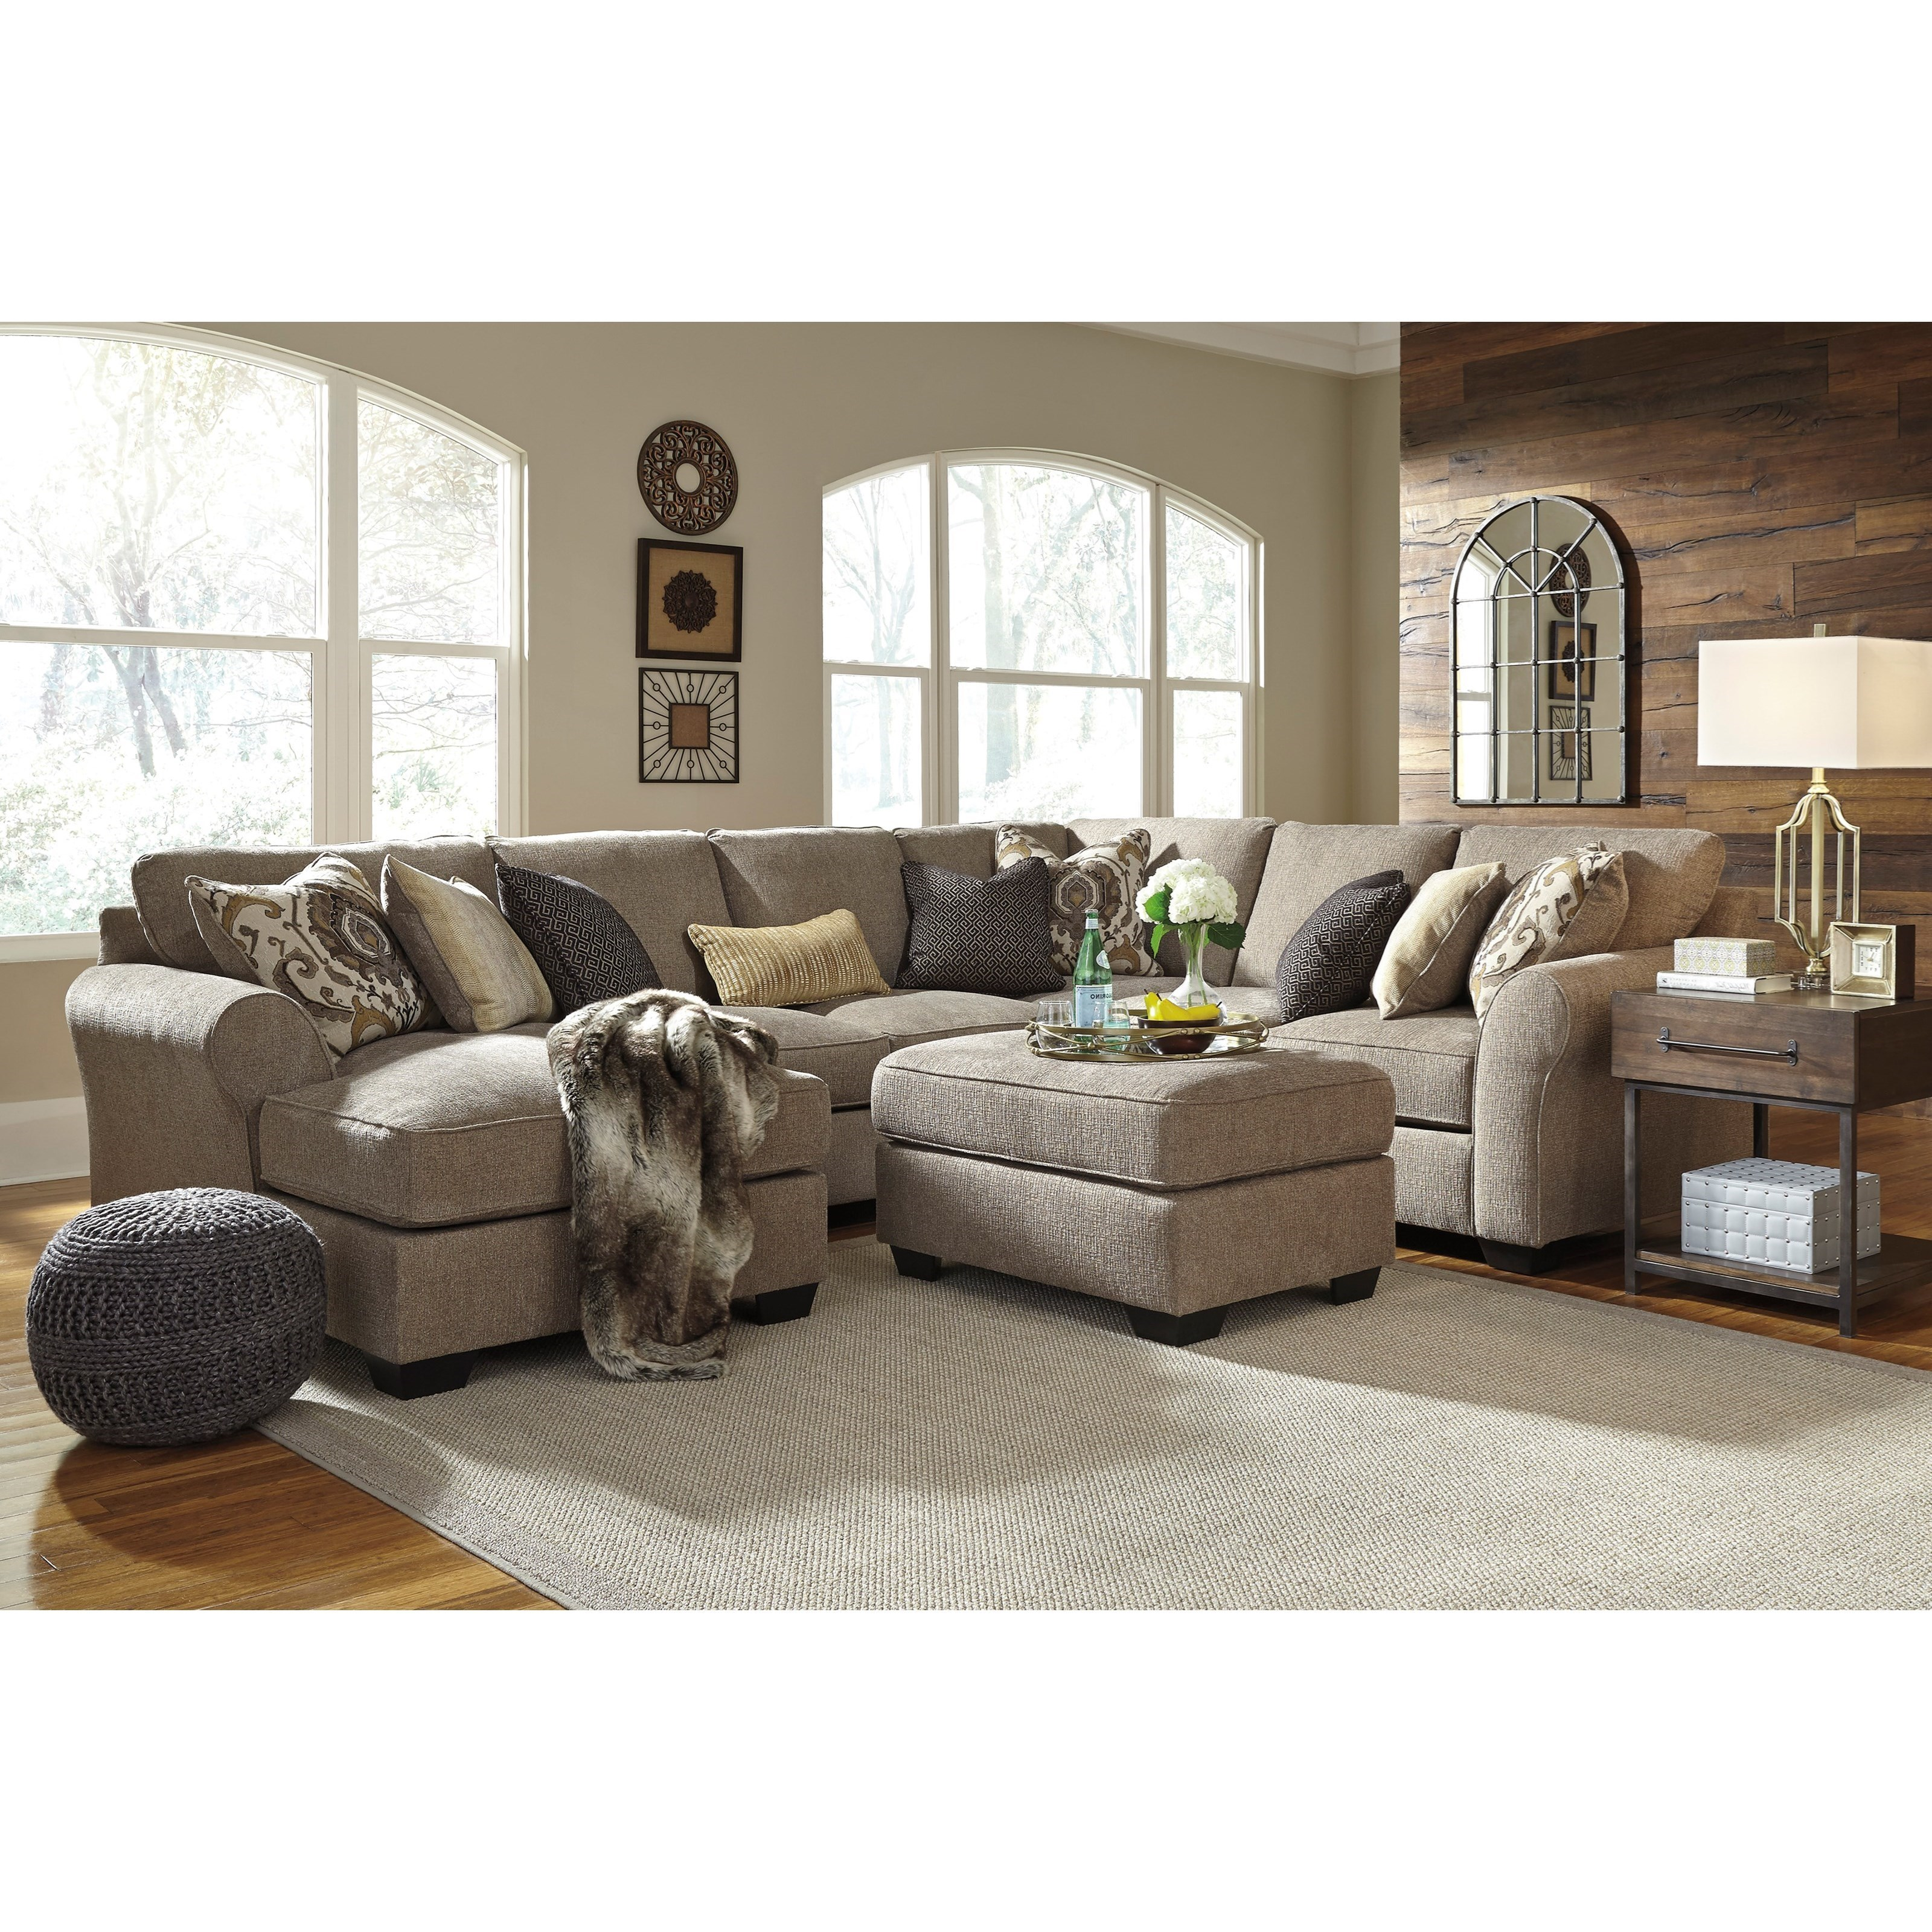 Pantomine 4-Piece Sectional with Left Chaise by Benchcraft  sc 1 st  Dunk u0026 Bright Furniture : benchcraft sectional - Sectionals, Sofas & Couches